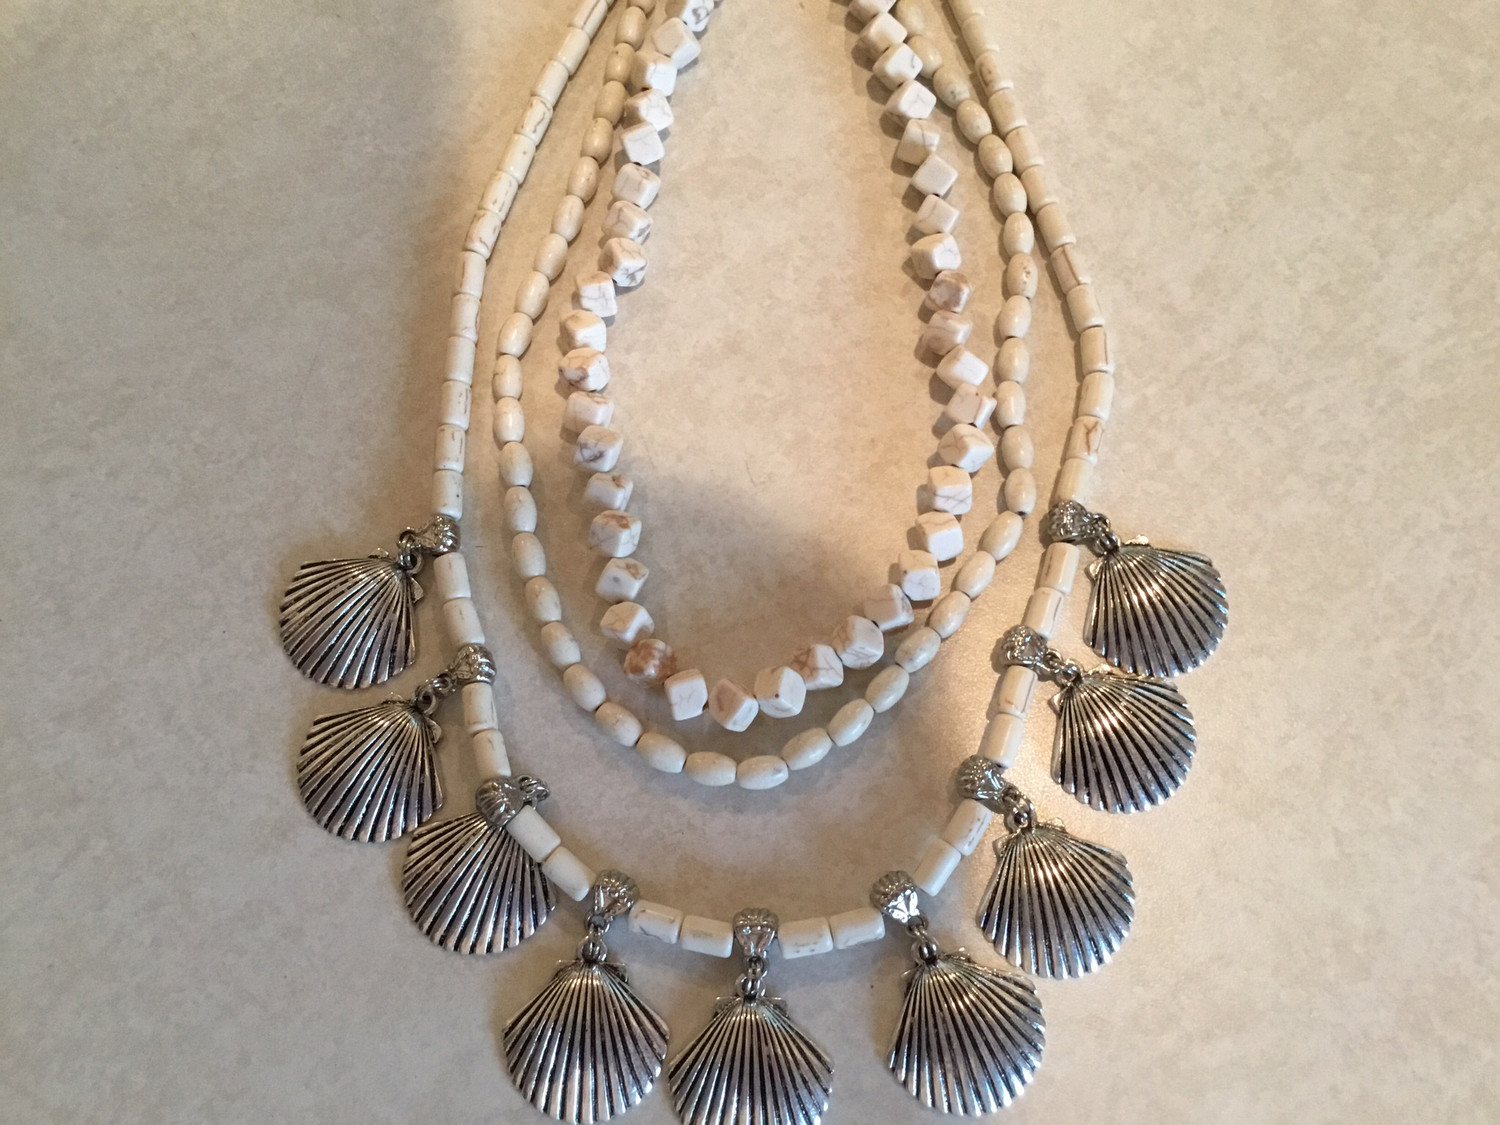 Layered Necklace With Metal Clam Shell